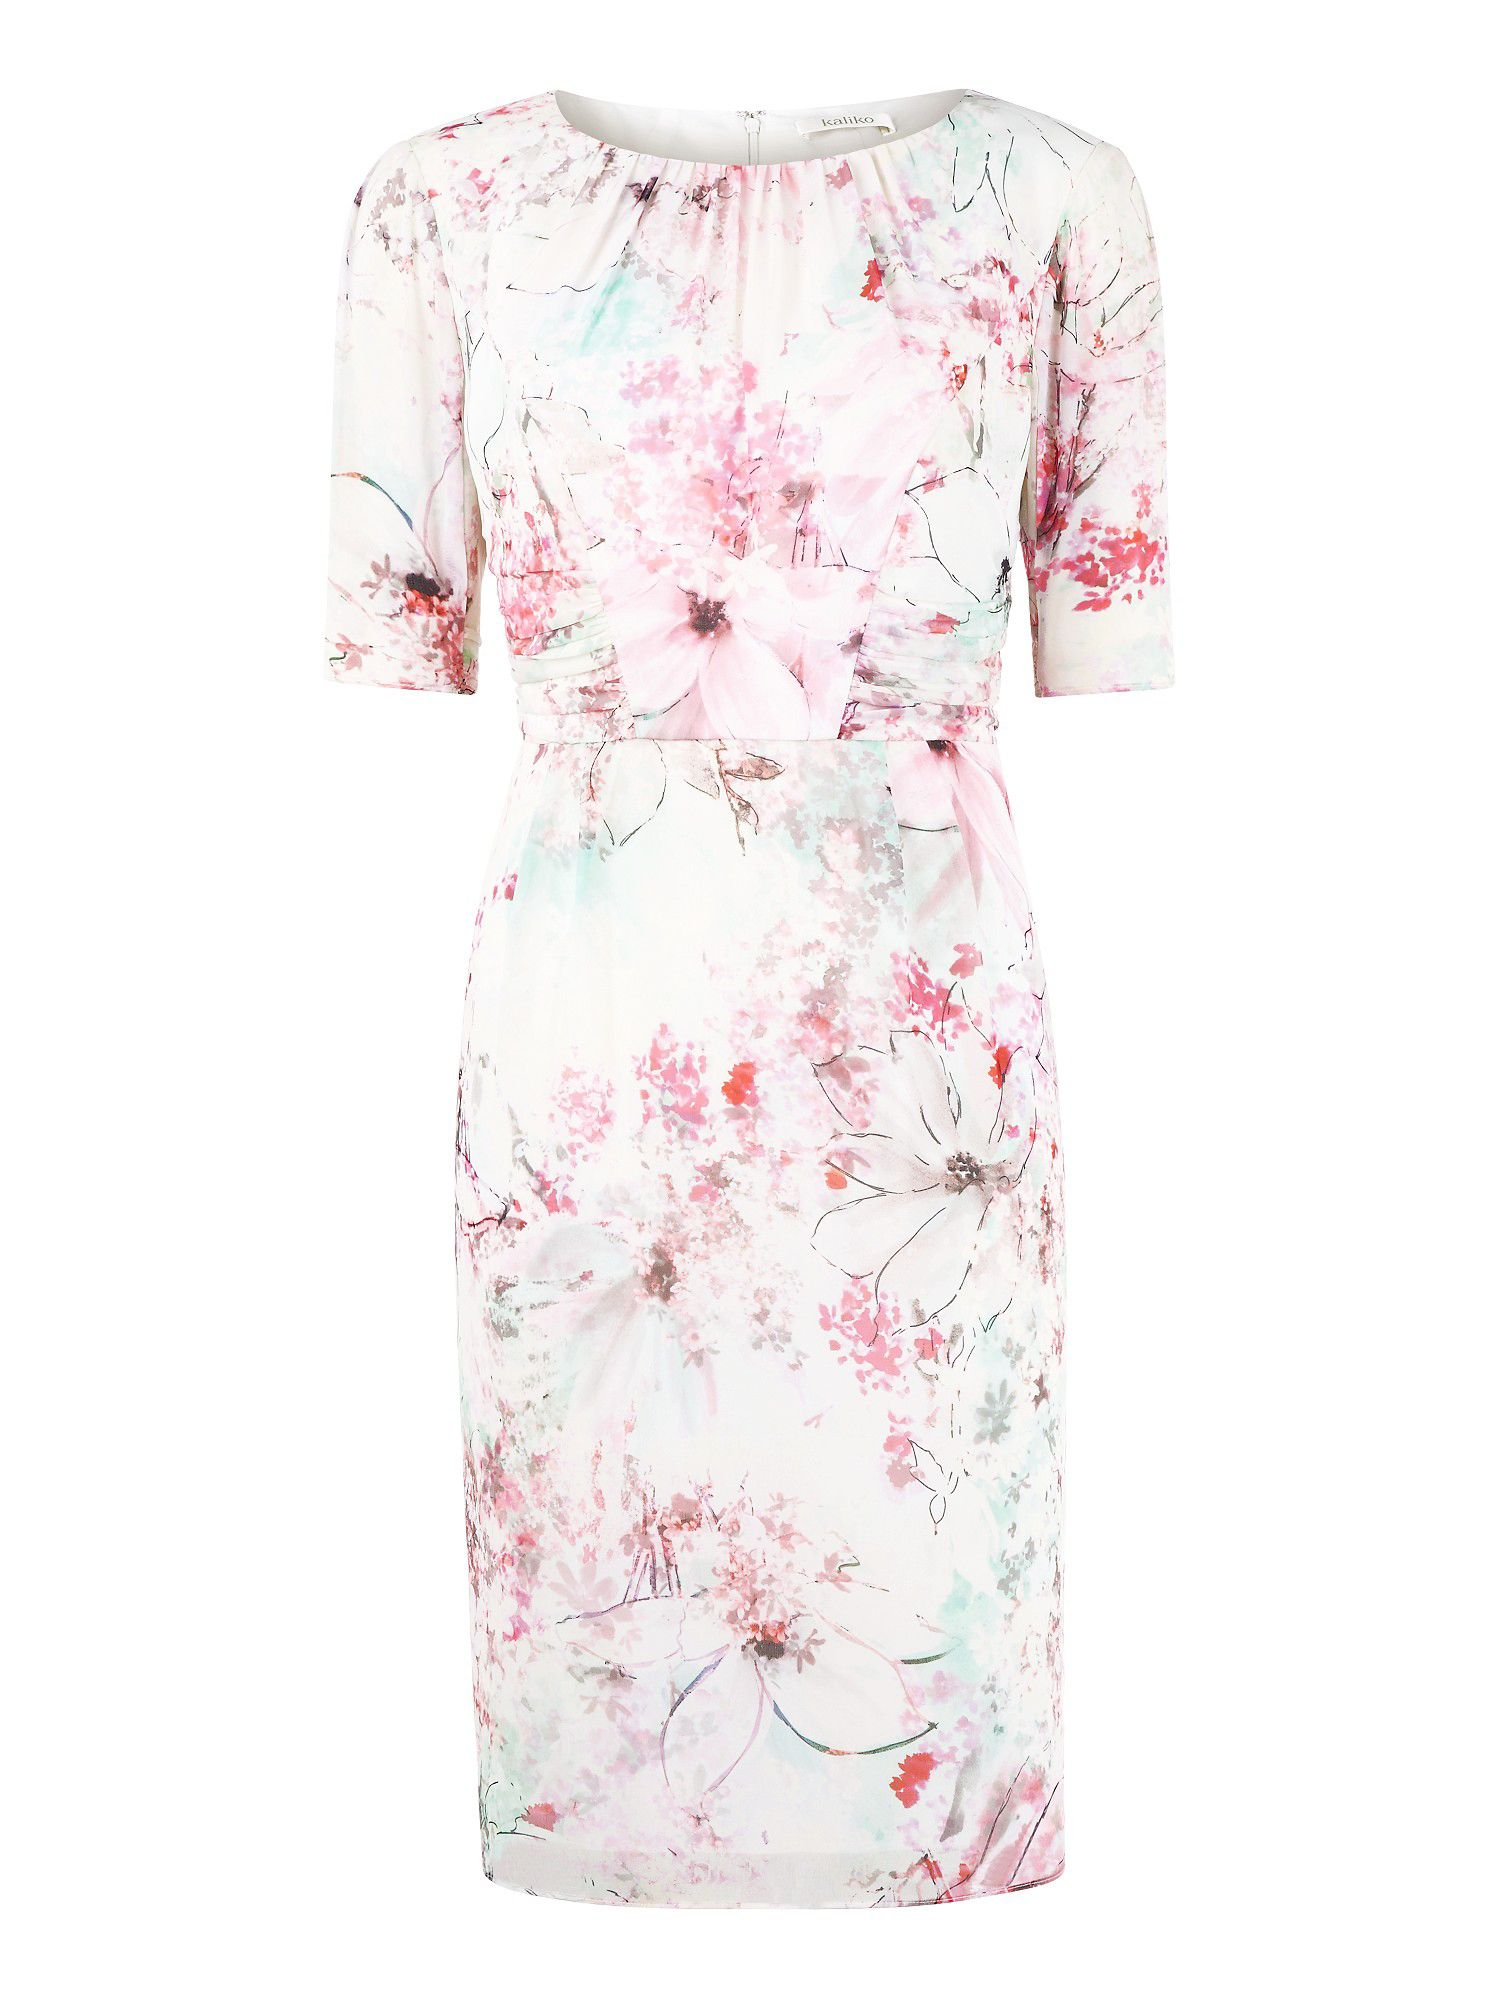 Magnolia floral print ruched dress